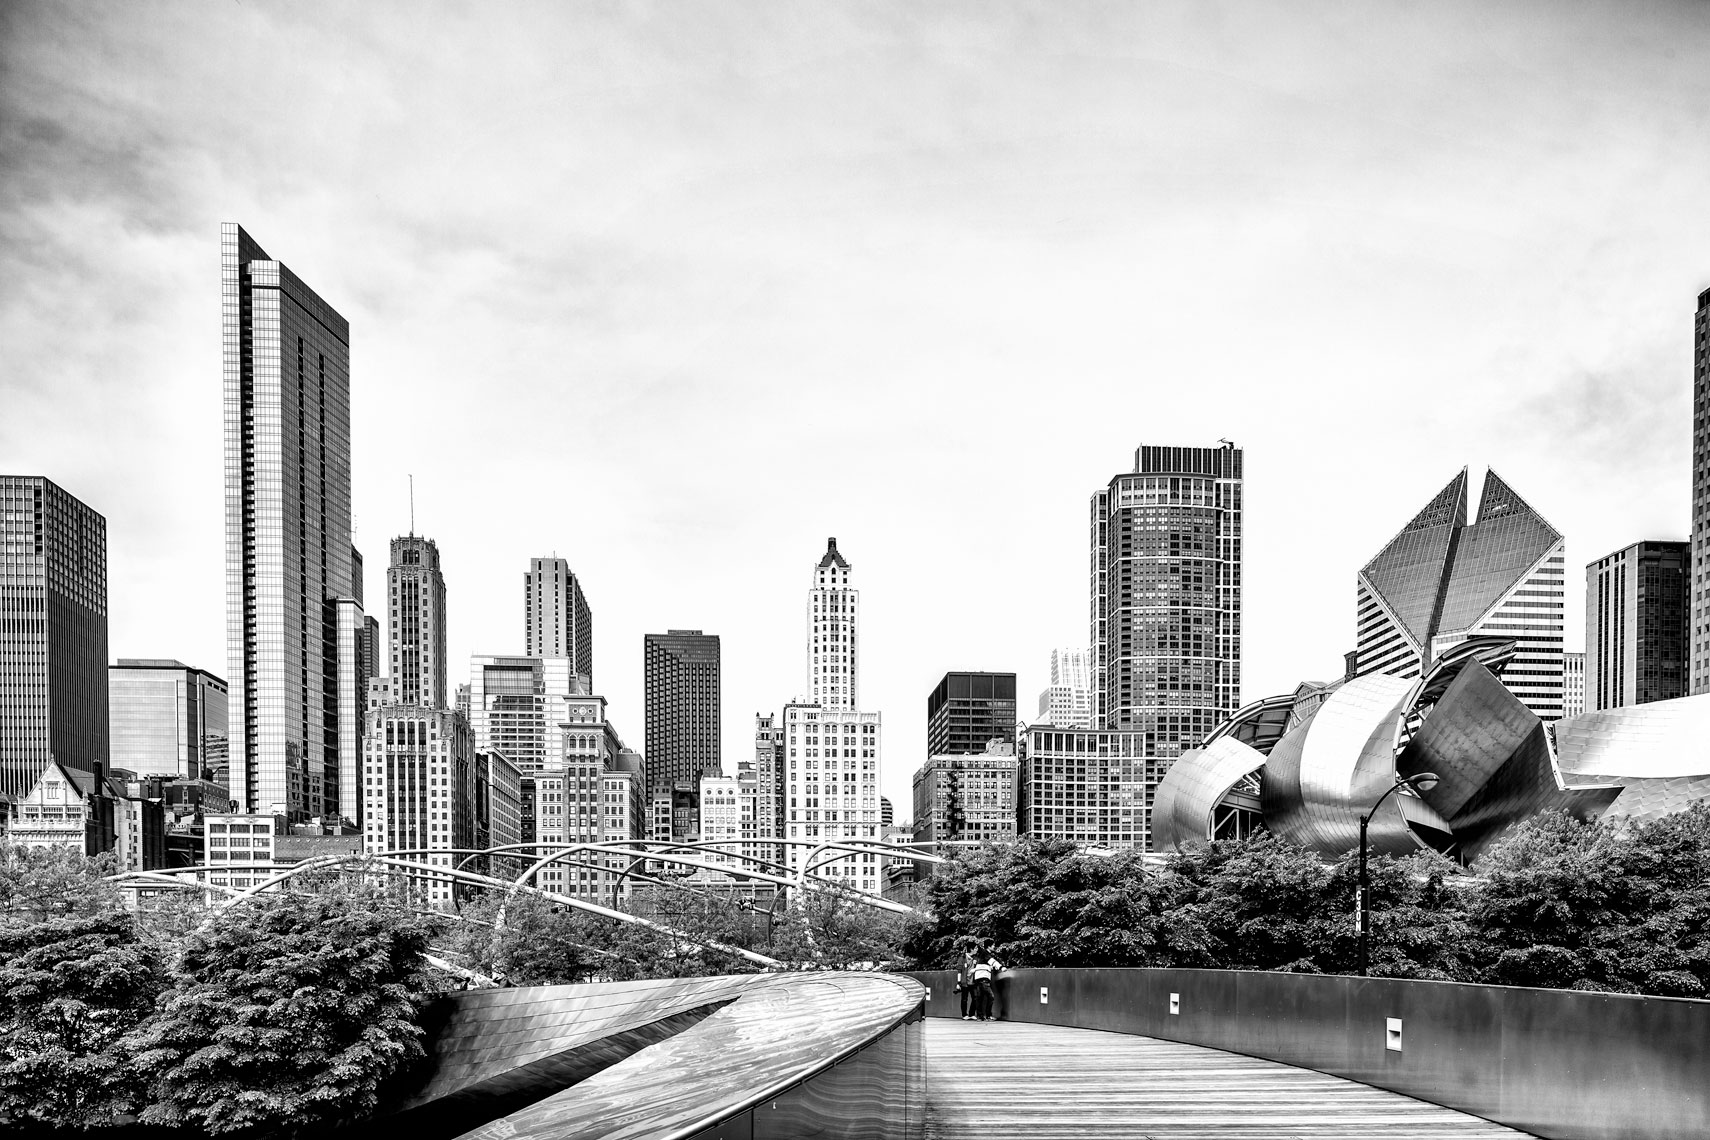 Chicago-5117-Edit-Edit-Edit.jpg